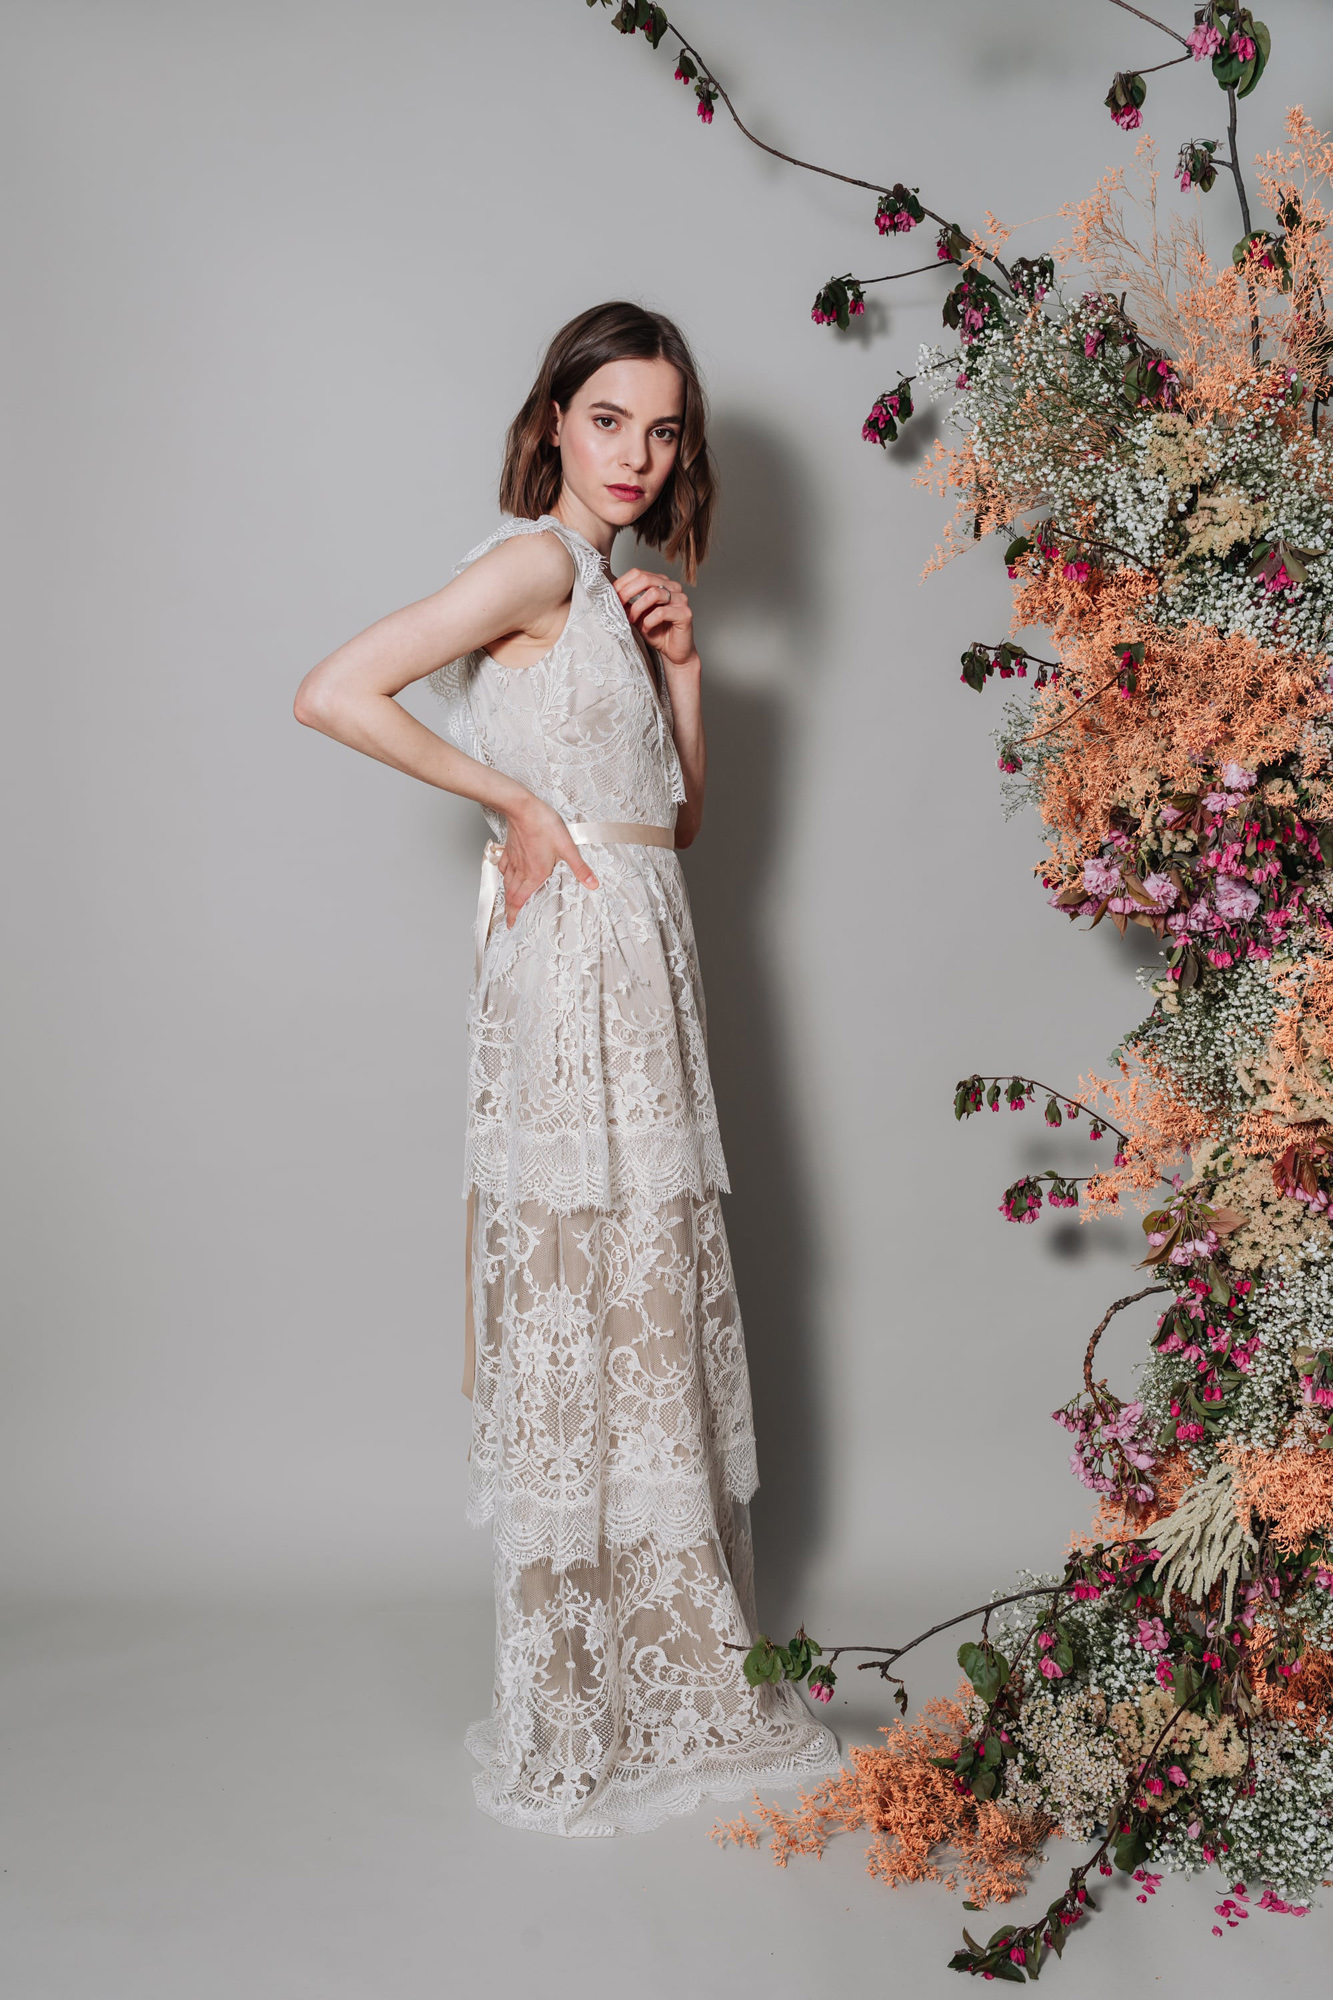 Kate-Beaumont-Sheffield-Wild-Lupin-Bohemian-Lace-Wedding-Gown-Tiered-Skirt-6.jpg